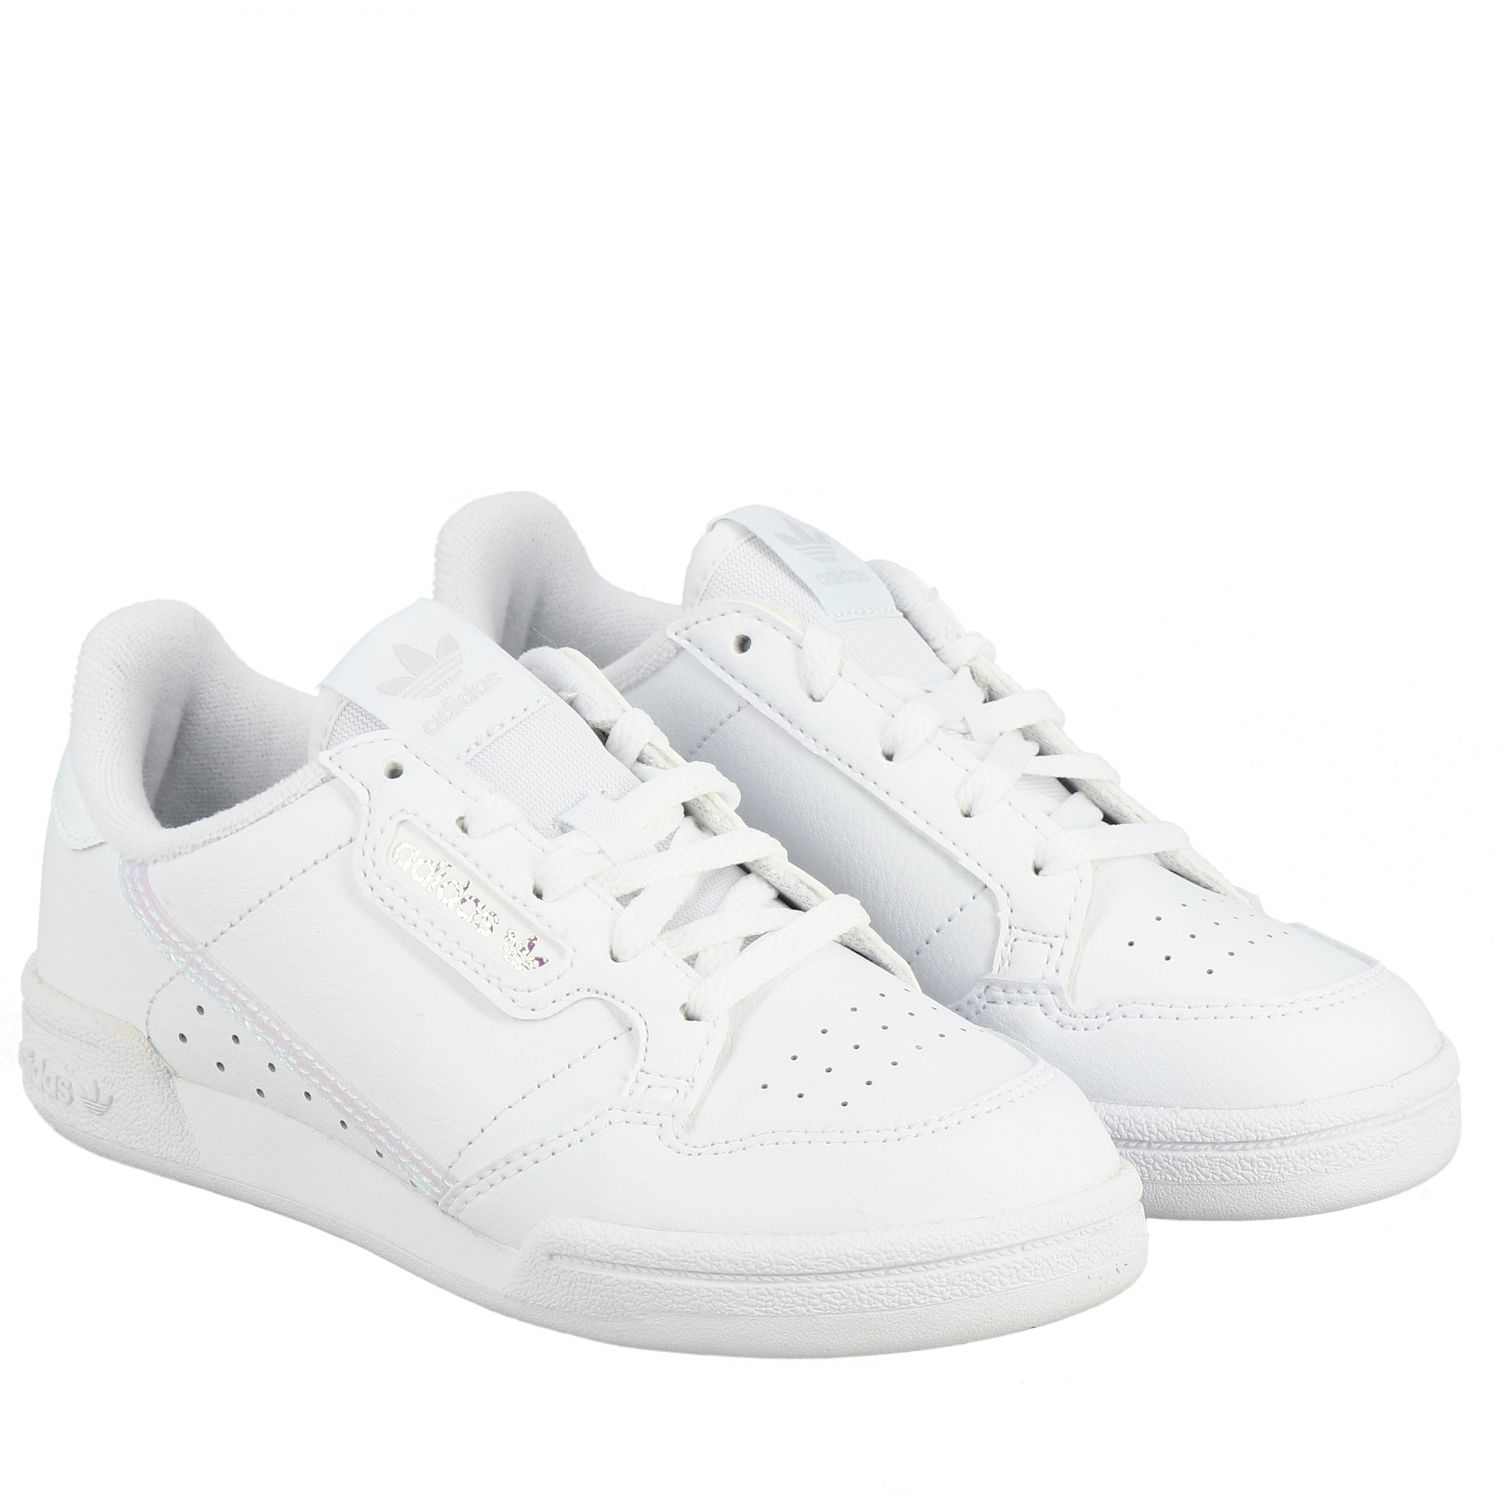 Scarpe Adidas Originals: Sneakers Continental 80 Adidas Originals in pelle bianco 2